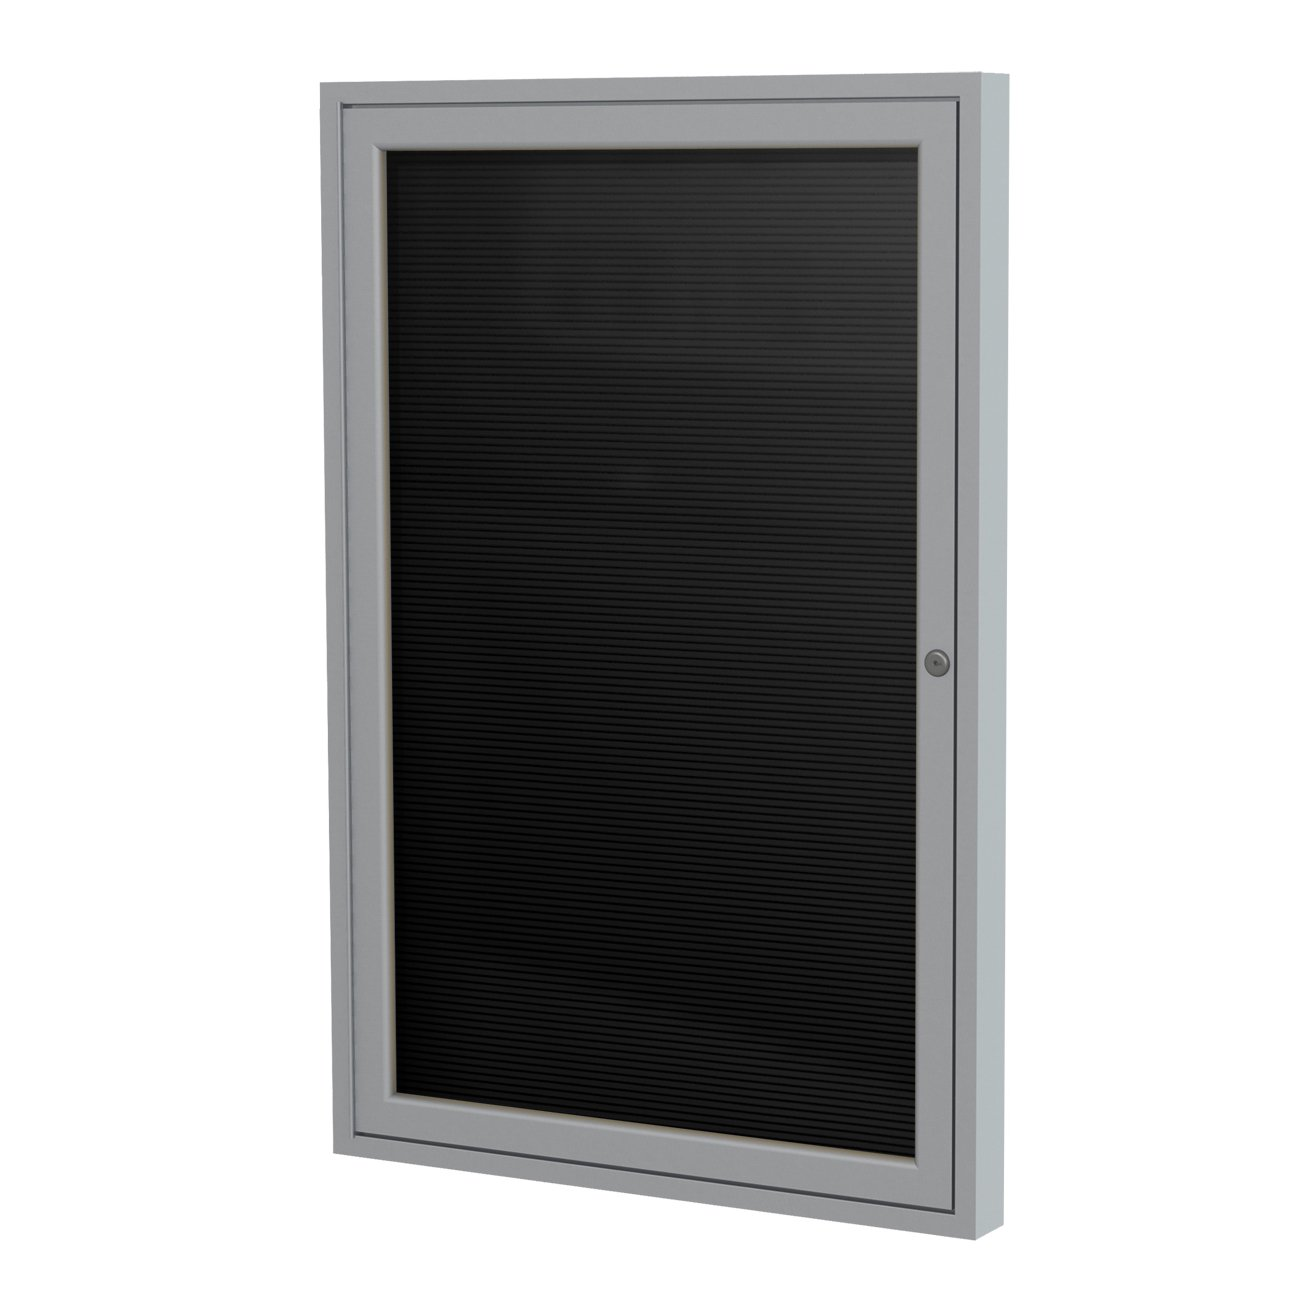 Ghent 36''x24'' 1-Door Satin Aluminum Frame Enclosed Flannel Letterboard - Black - Made in the USA